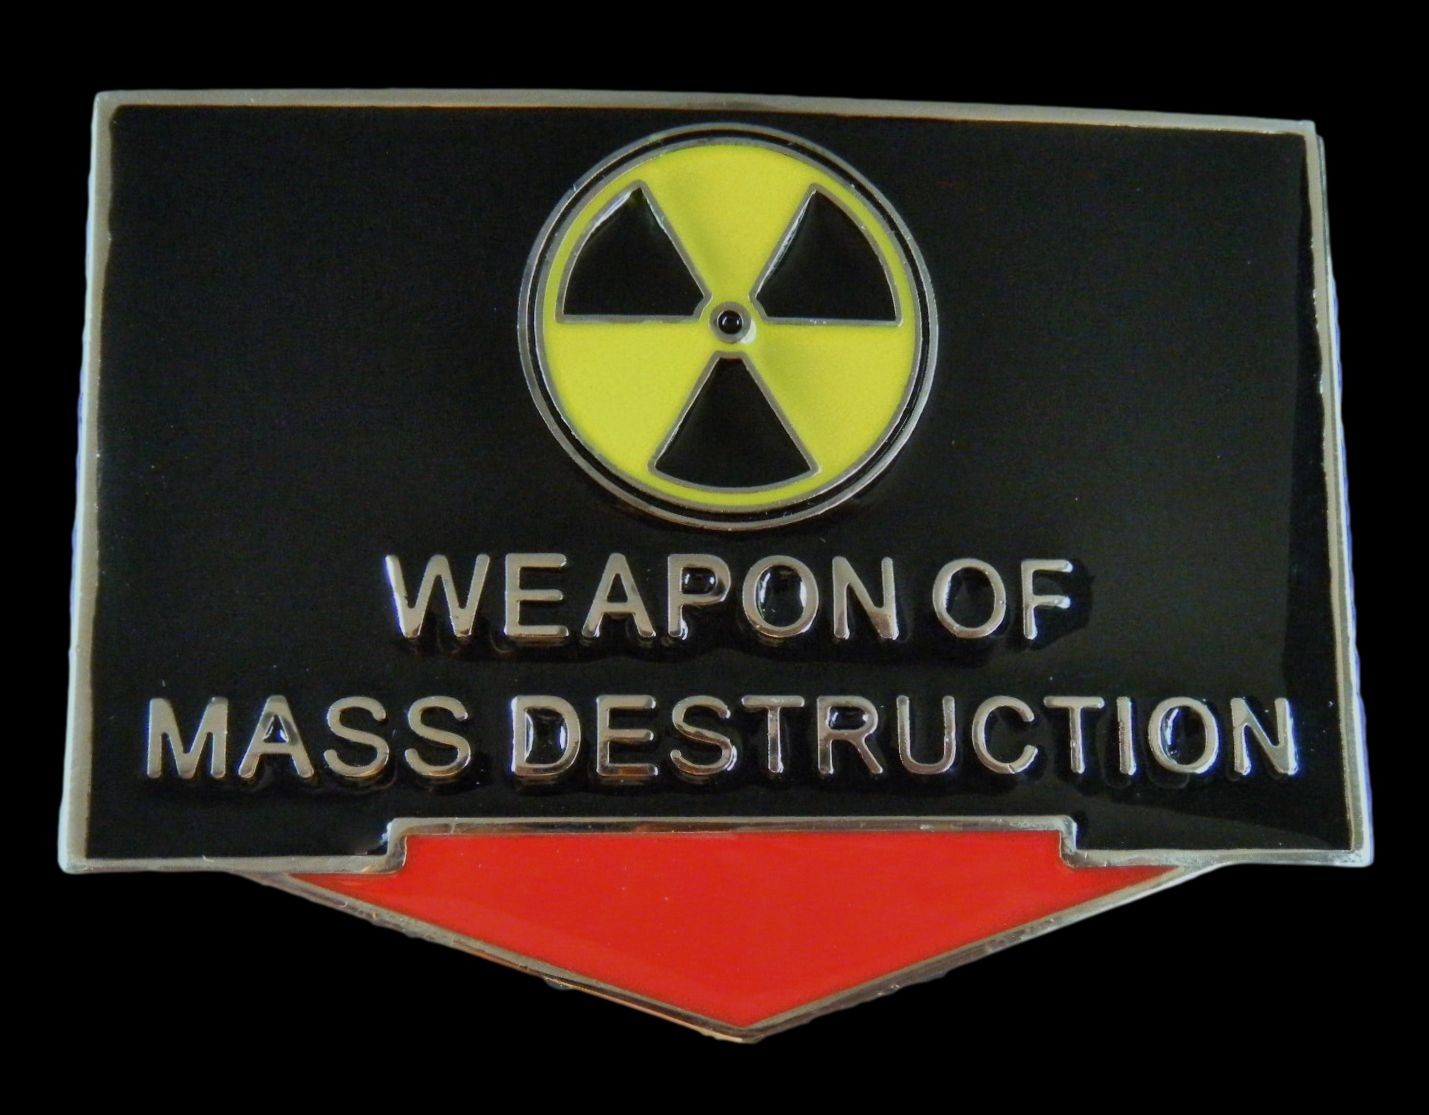 ak 47 the true weapon of mass destruction Note: citations are based on reference standards however, formatting rules can vary widely between applications and fields of interest or study the specific requirements or preferences of your reviewing publisher, classroom teacher, institution or organization should be applied.